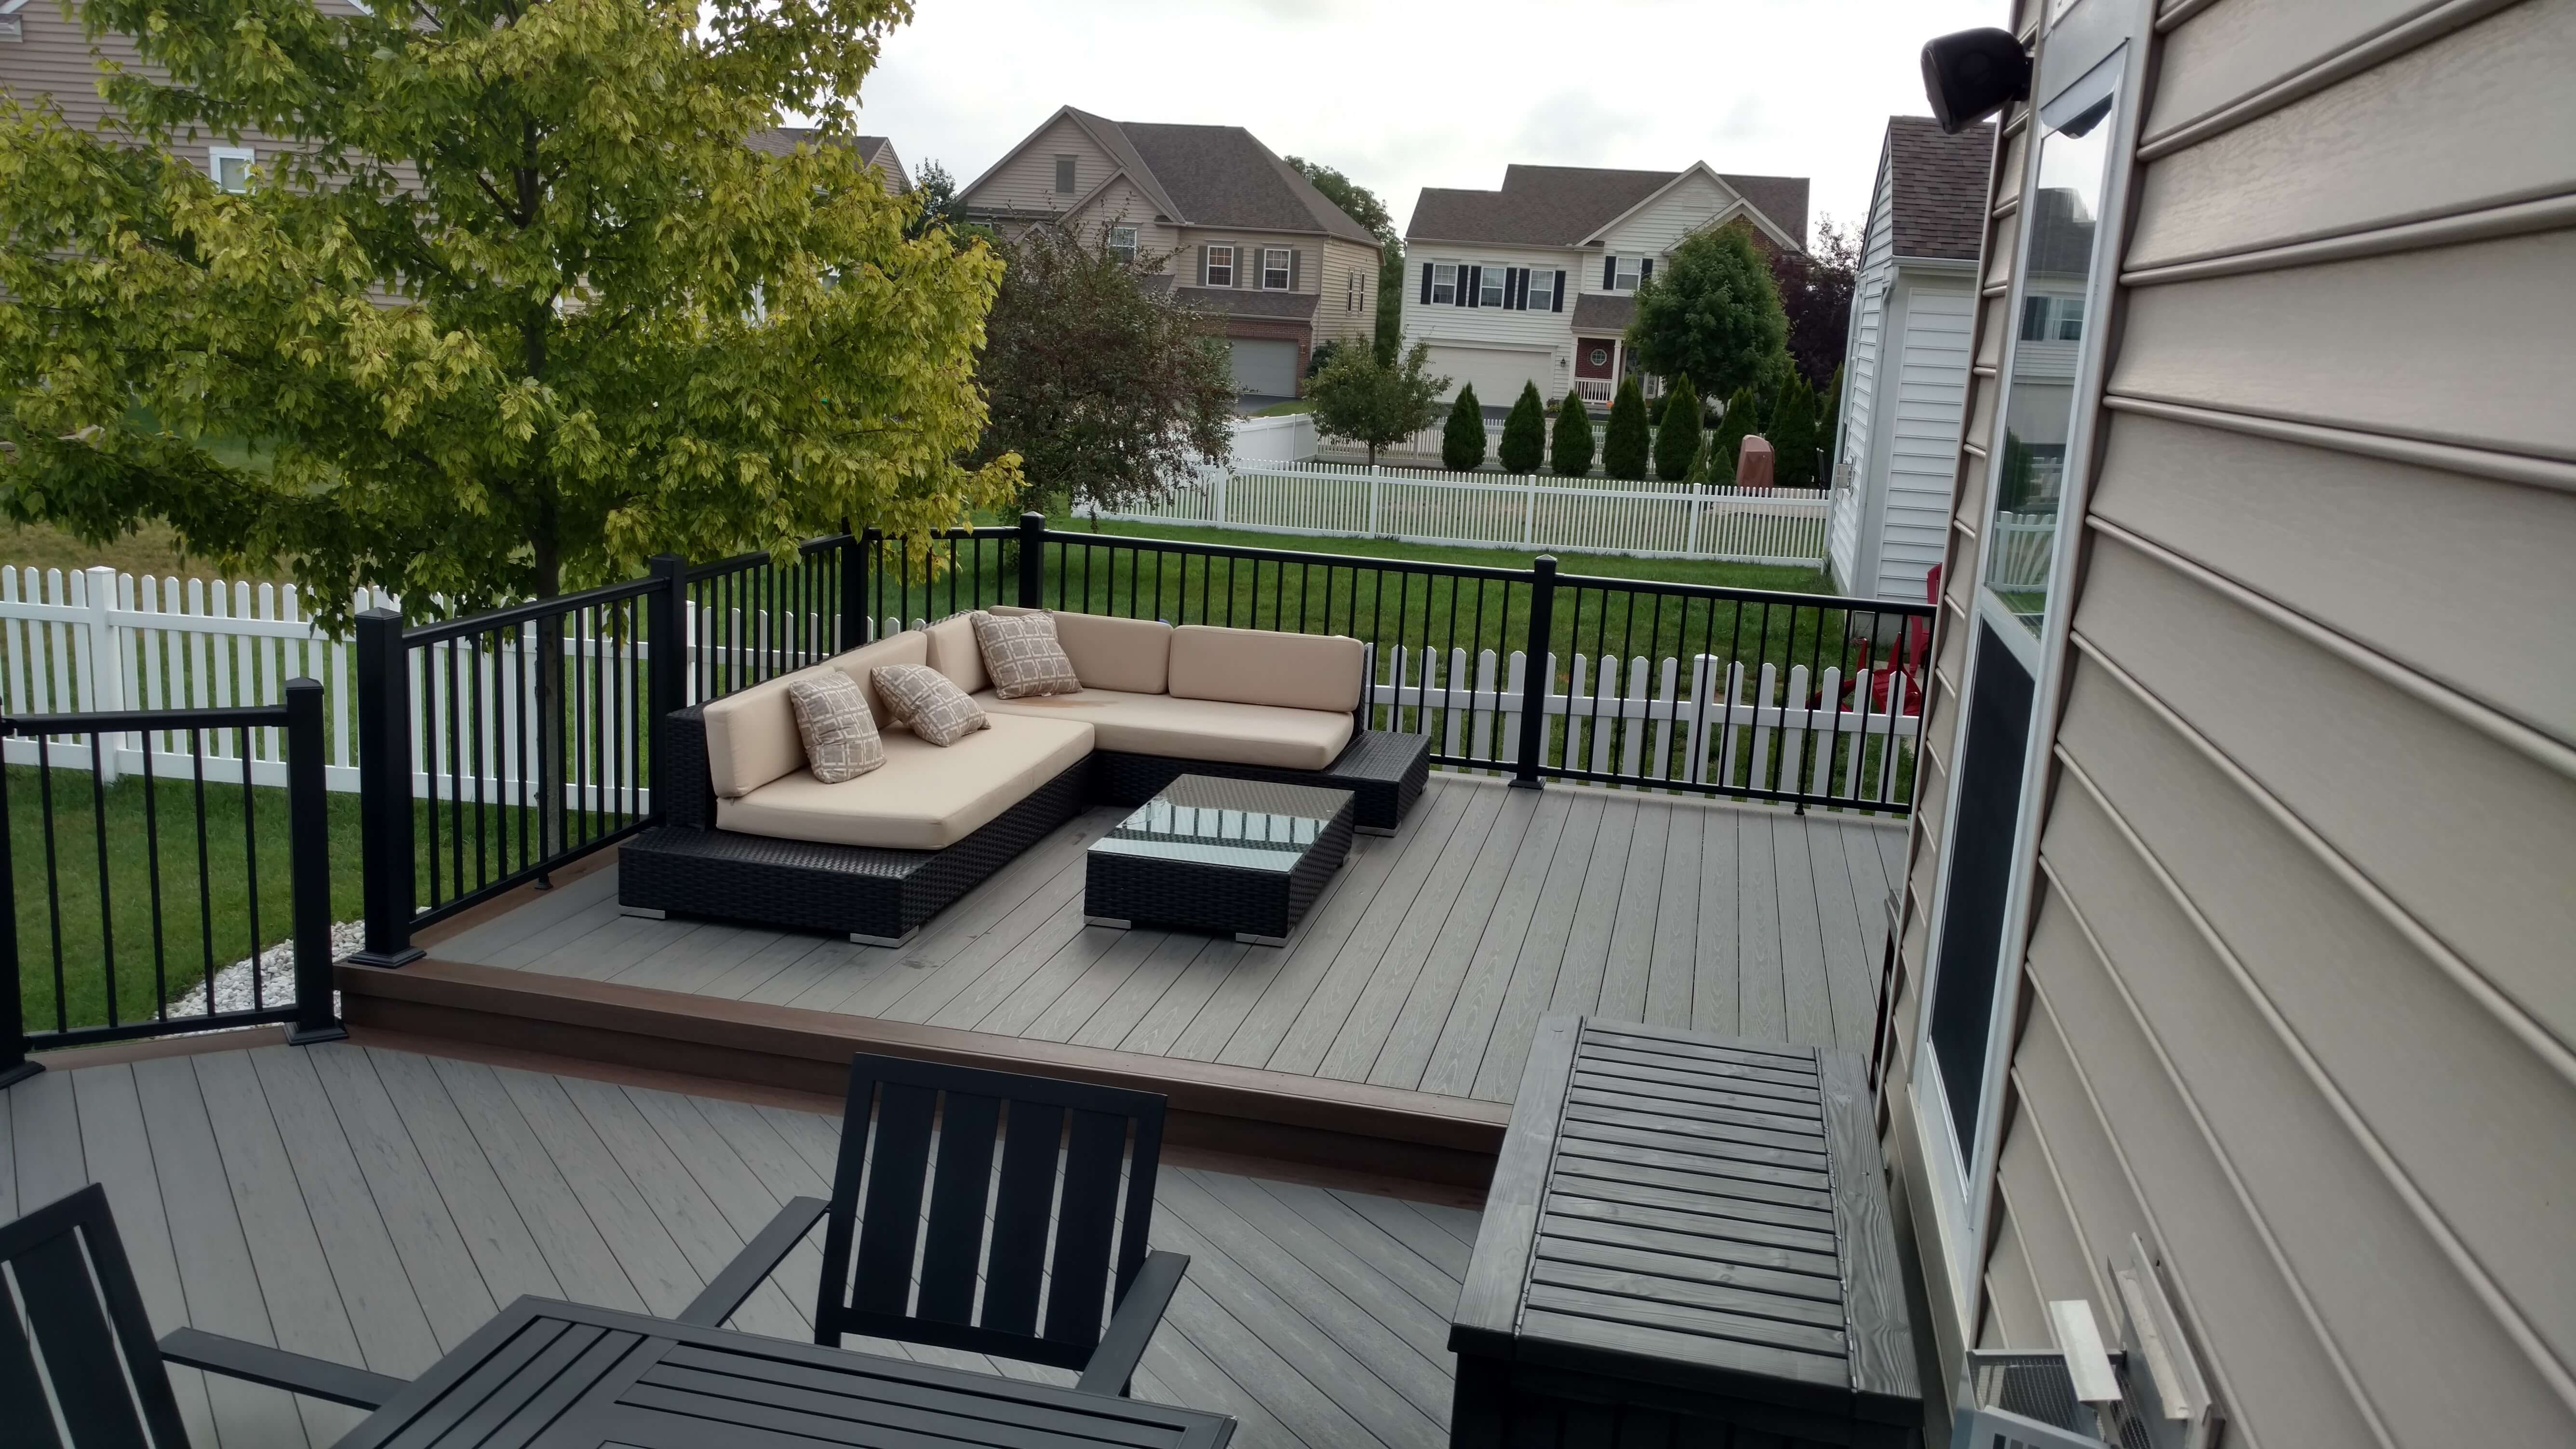 Custom deck with cozy seating area